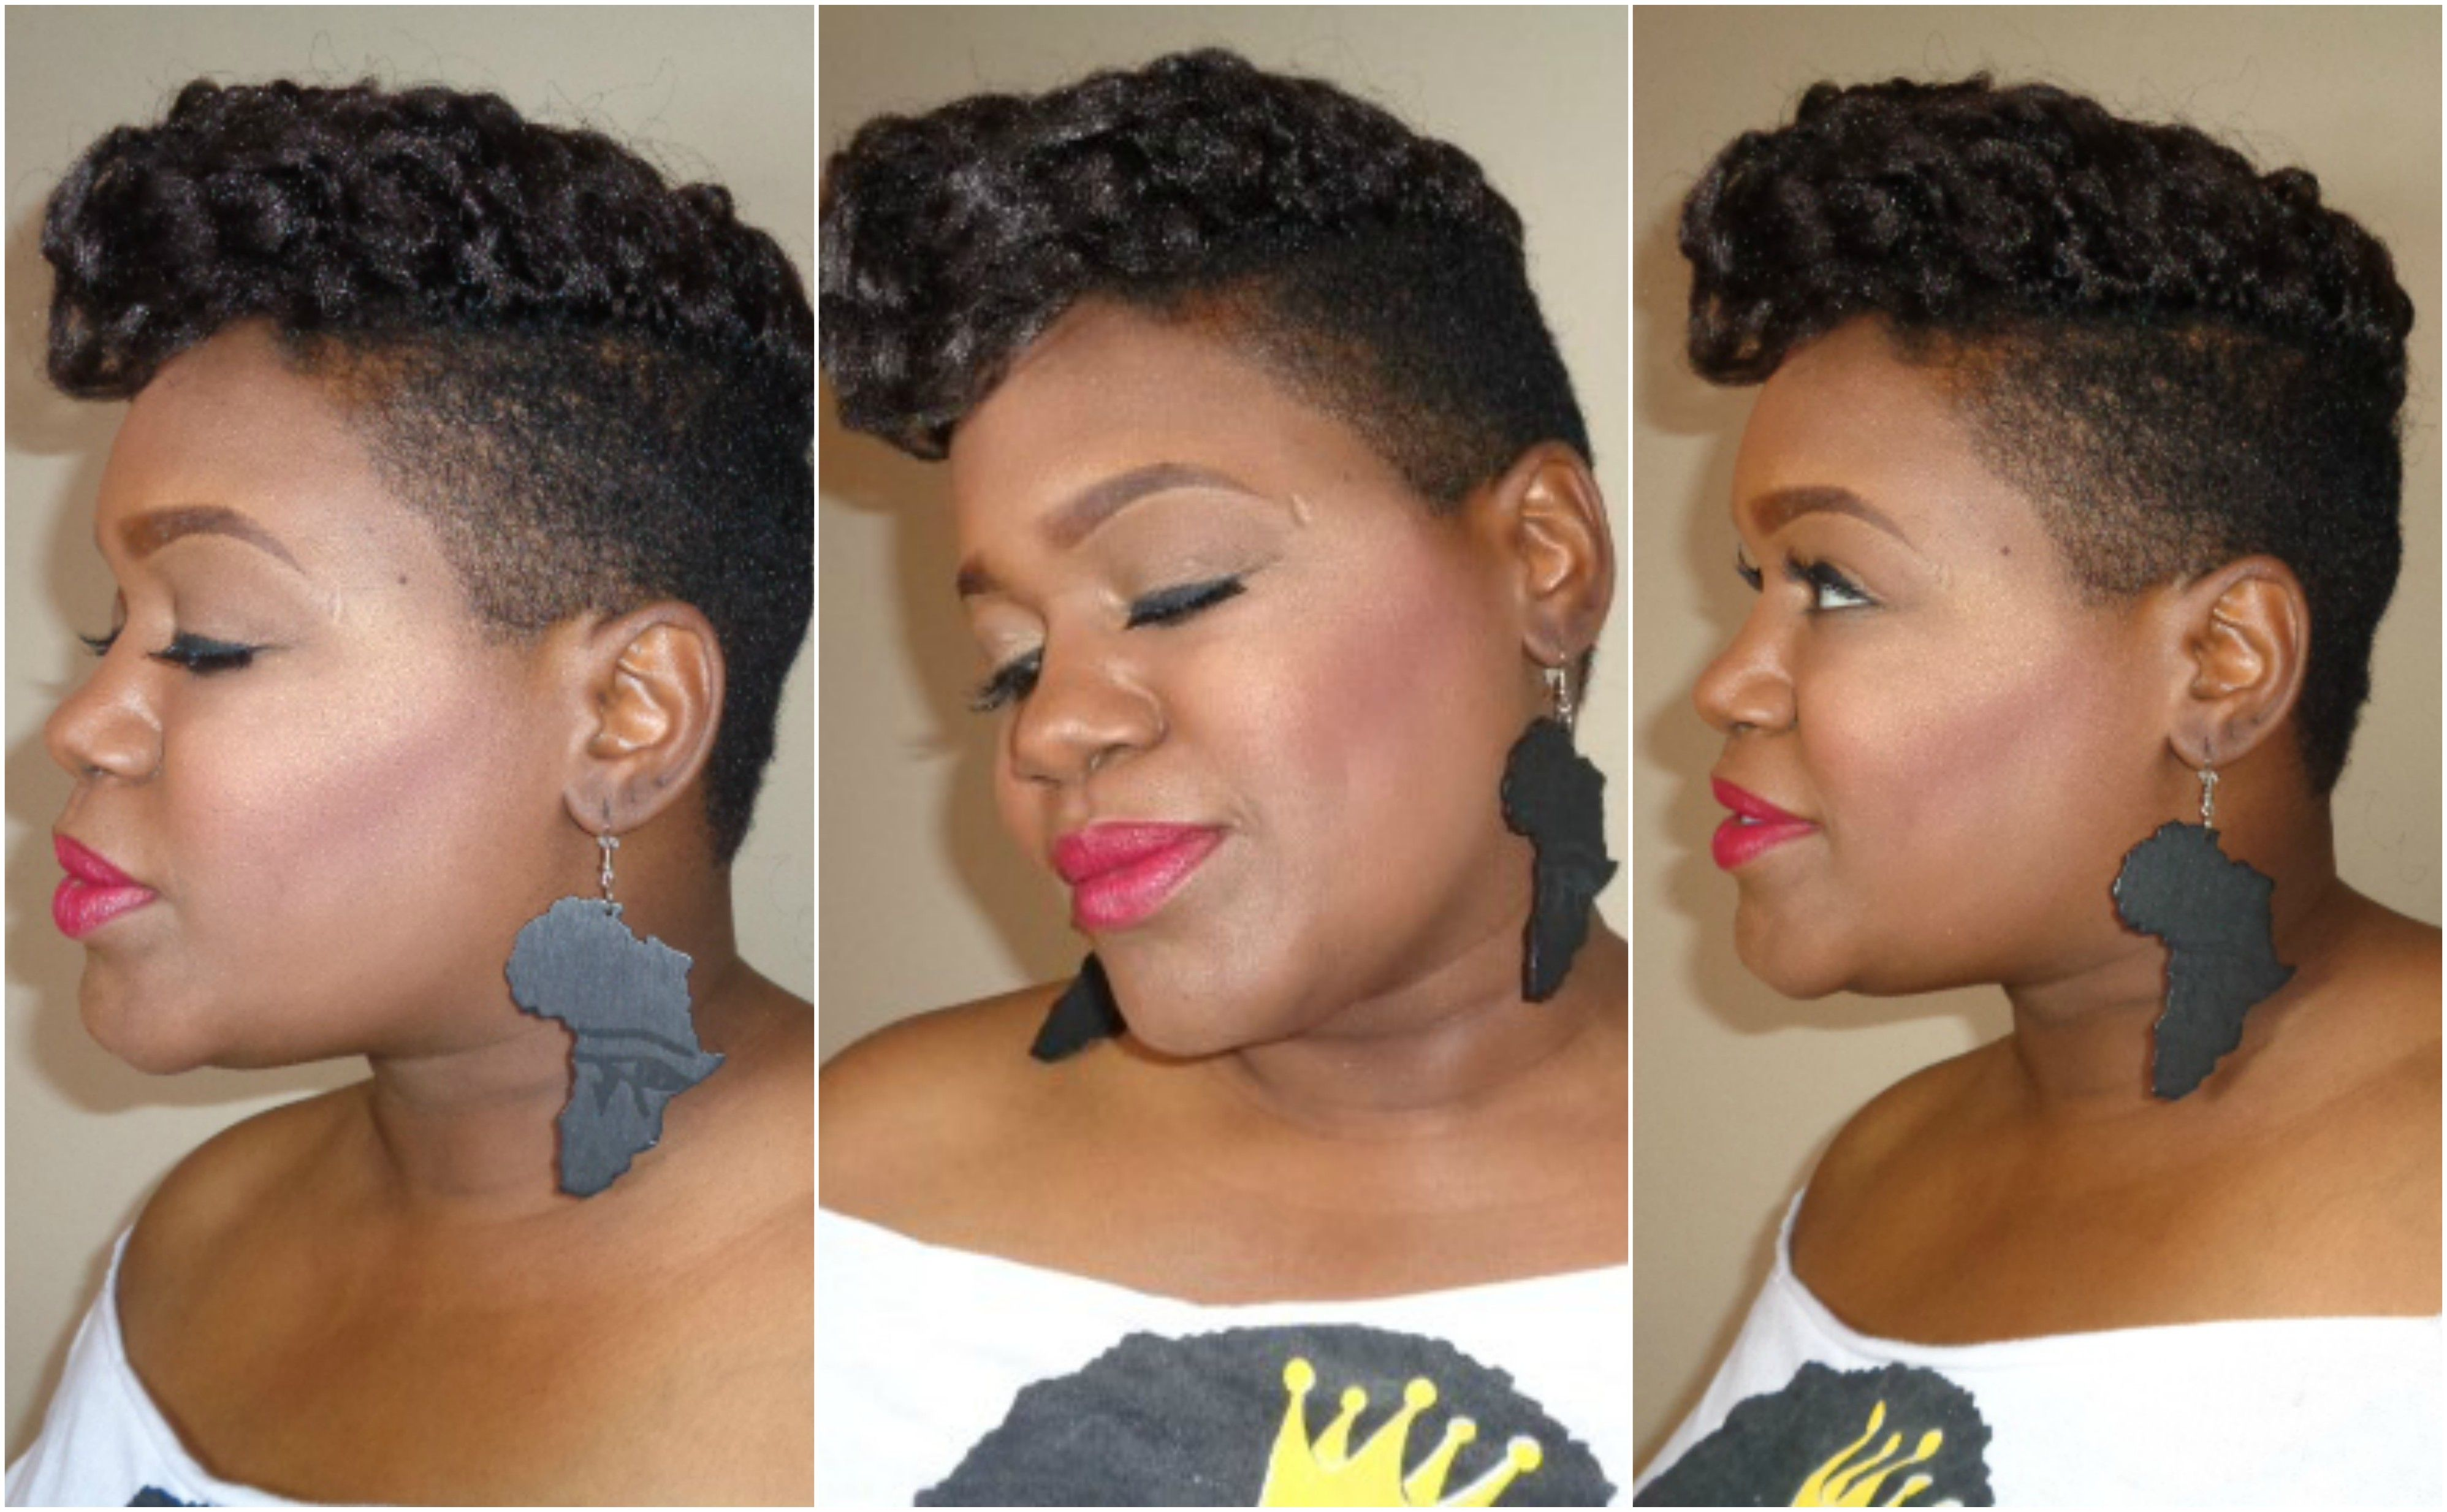 Undercut Hair Style With Crochets Full Video On Youtube